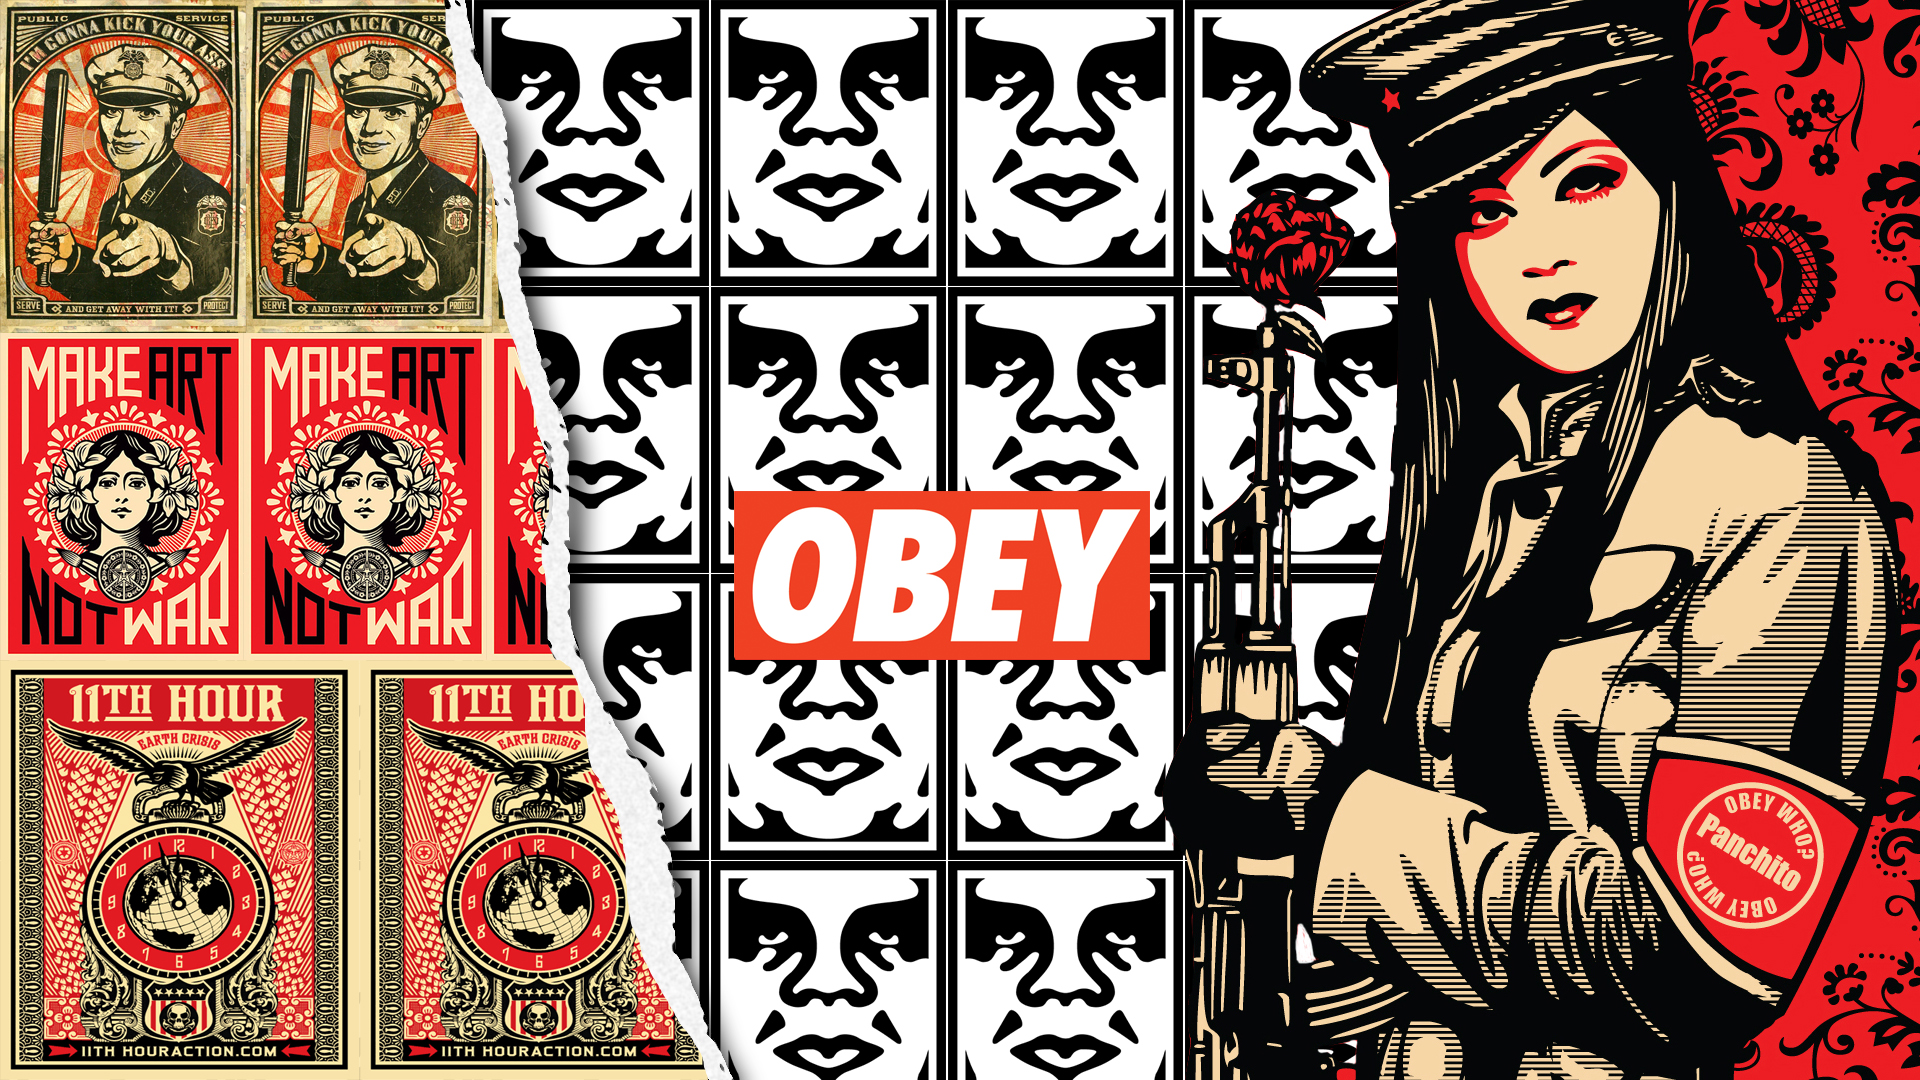 Obey wallpaper 1920x1080 by jaygunnink d5ih2af jpg 271589 1920x1080